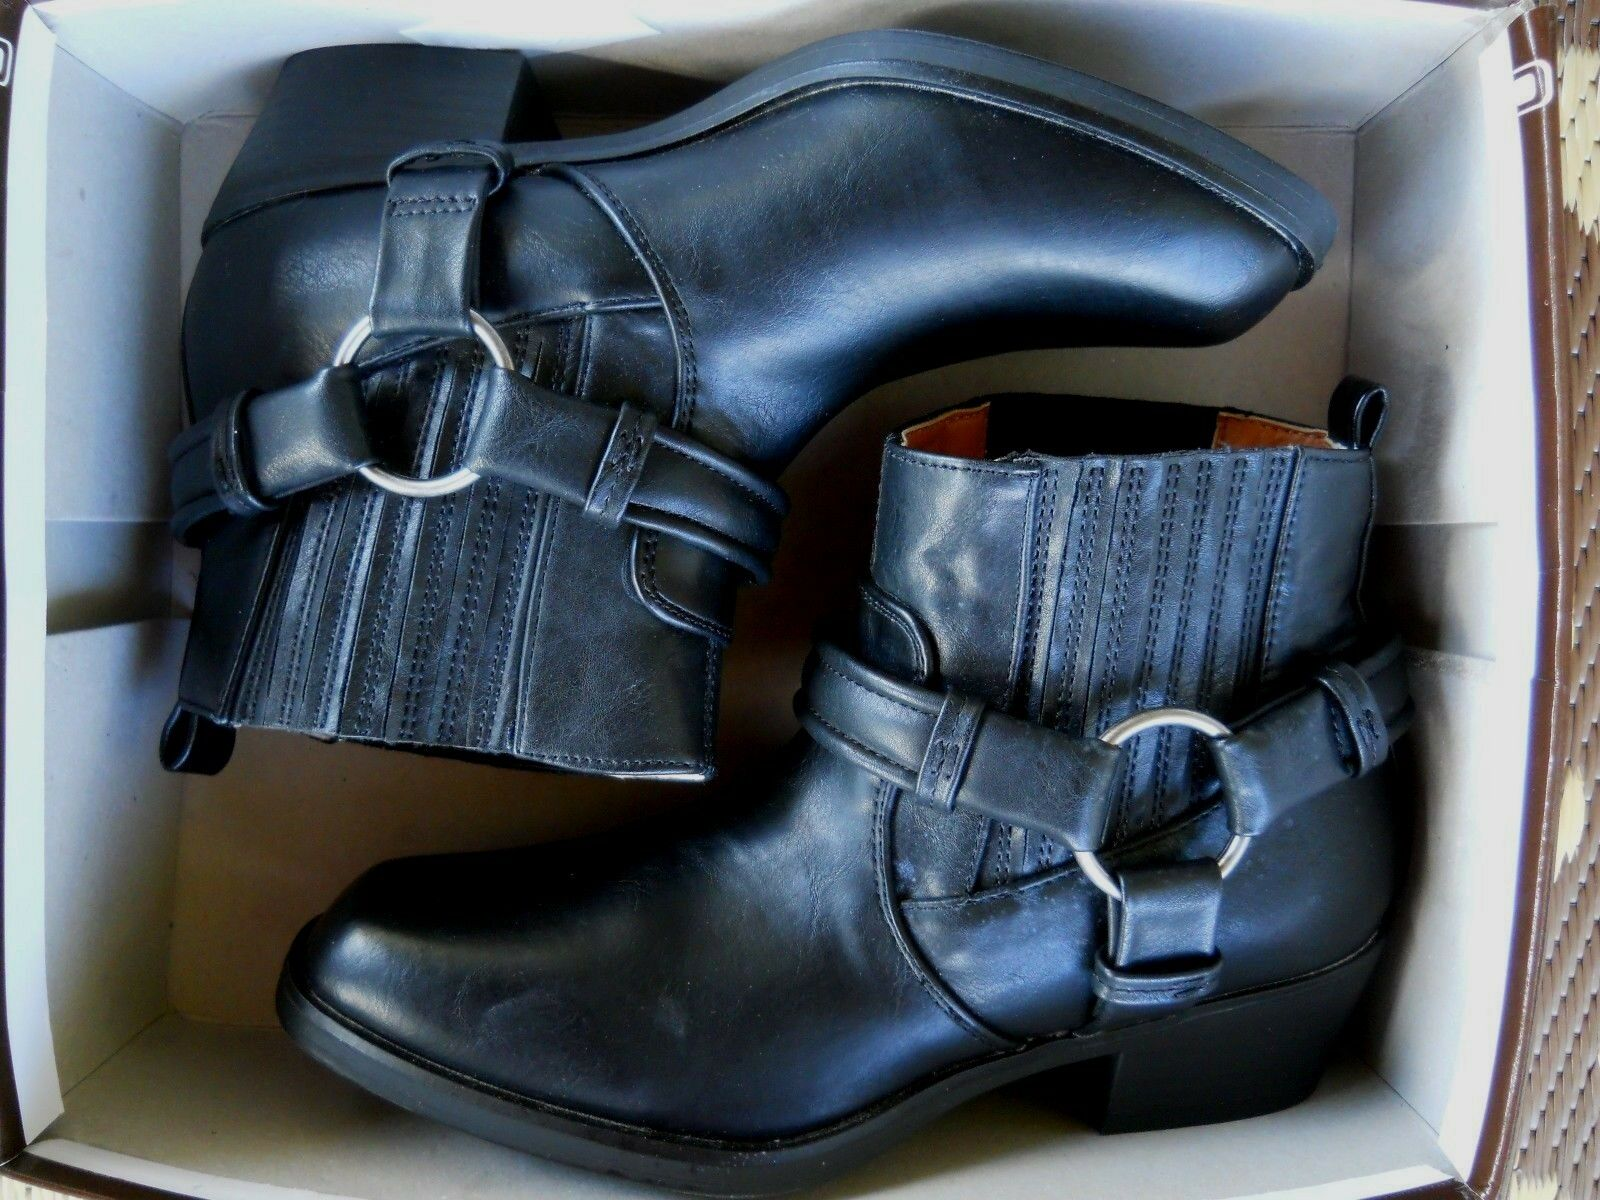 ESPRIT HAVEN BLACK MOTO STYLE PULL-ON BOOTIES ANKLE BOOTS ~ 6.5M